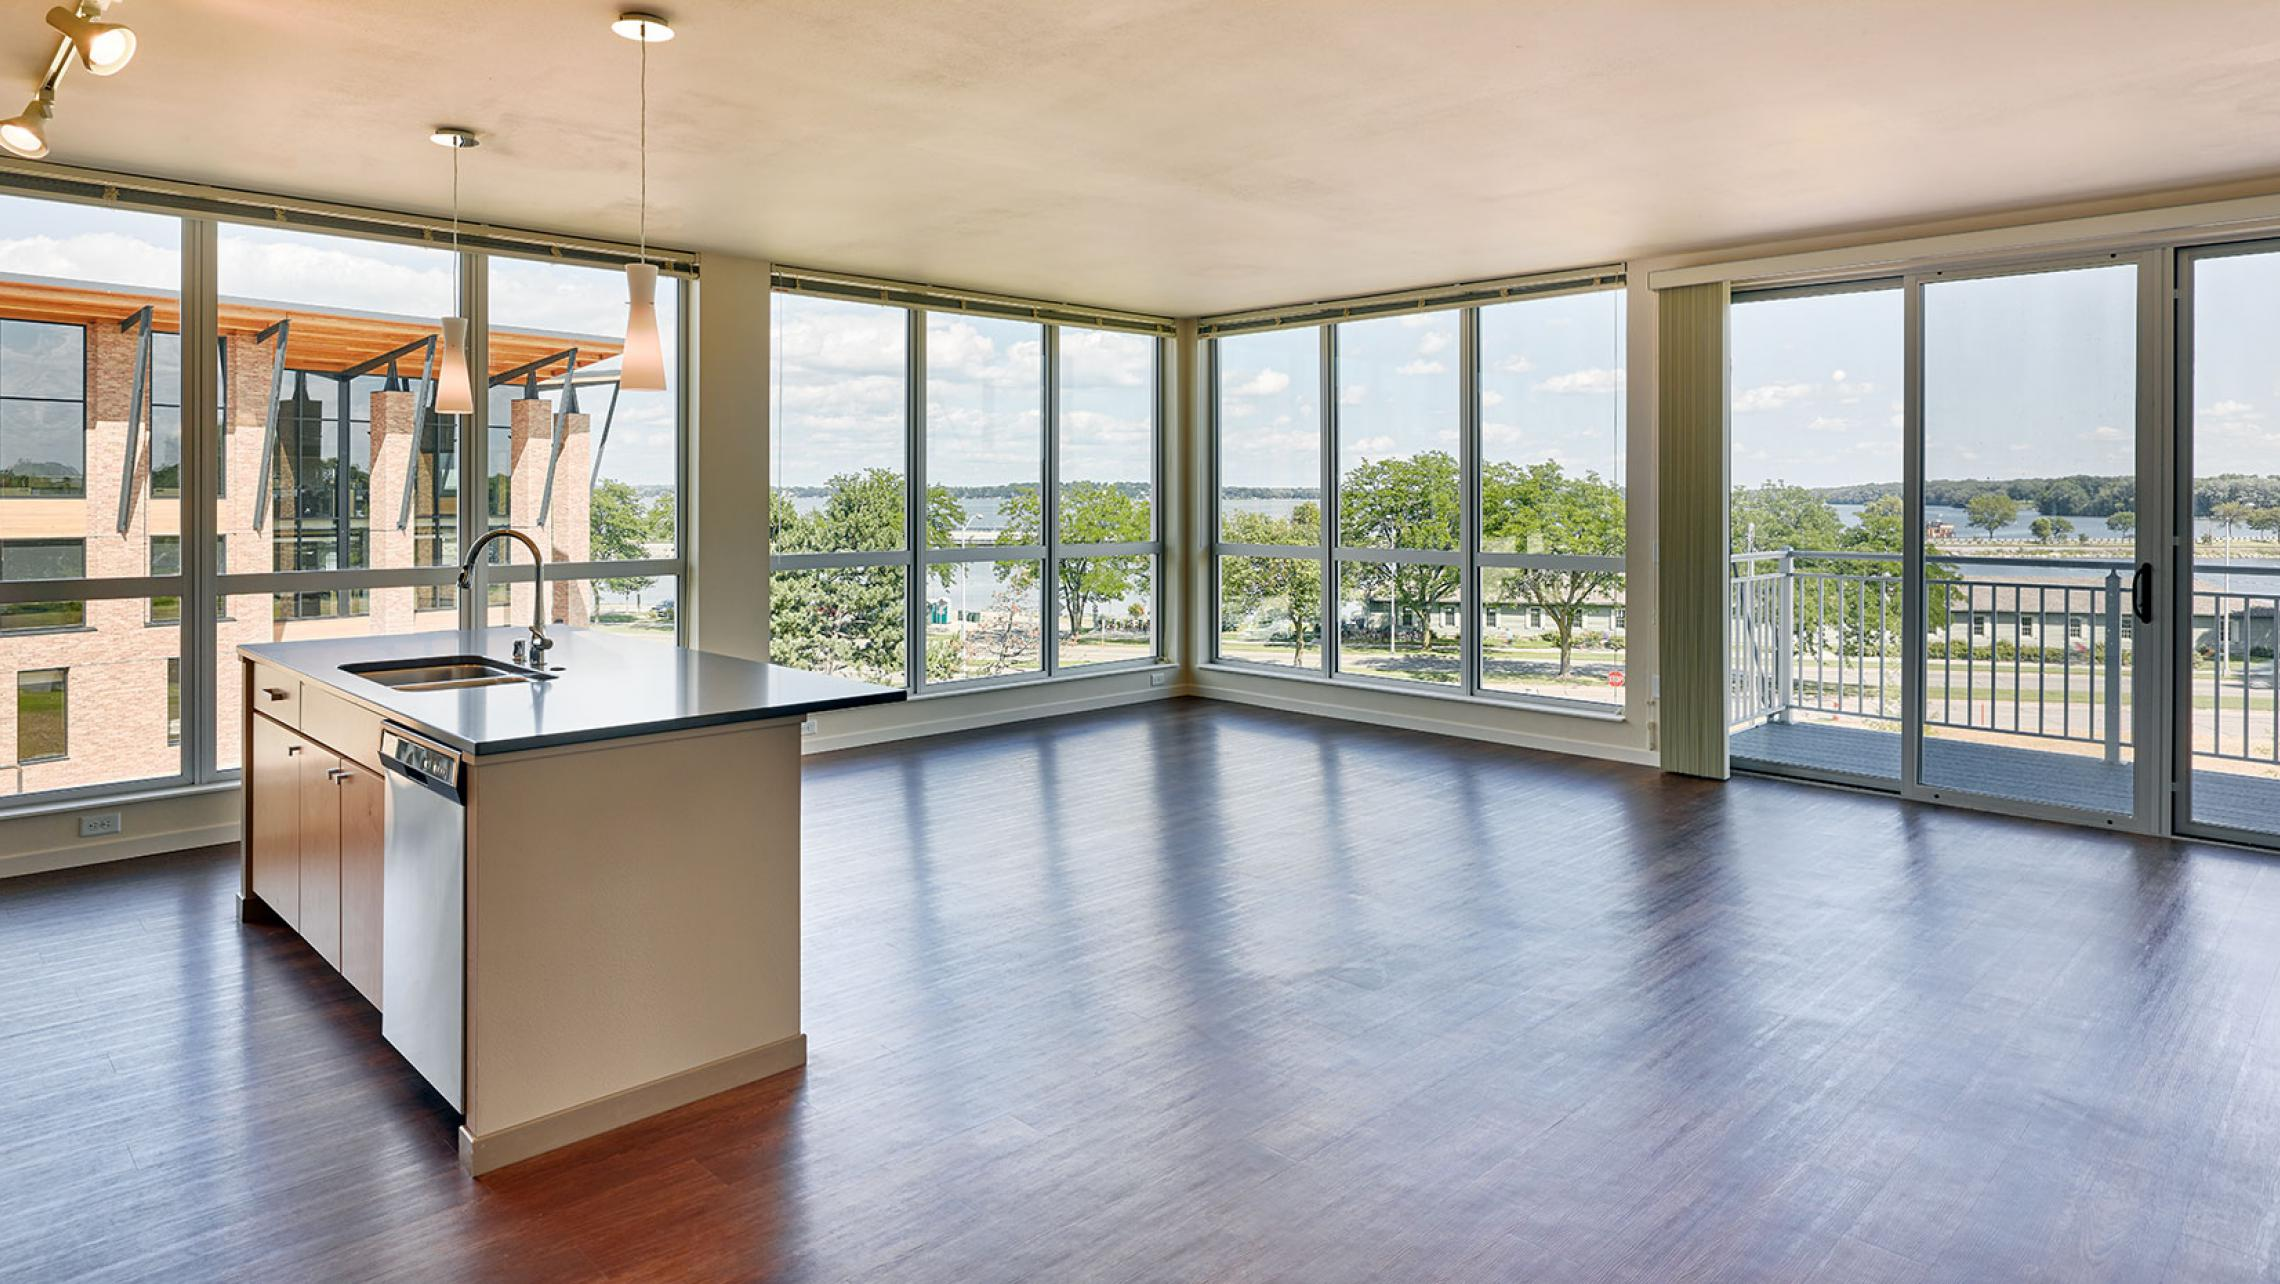 ULI Nine Line Apartments - Living Area with Lake Monona View